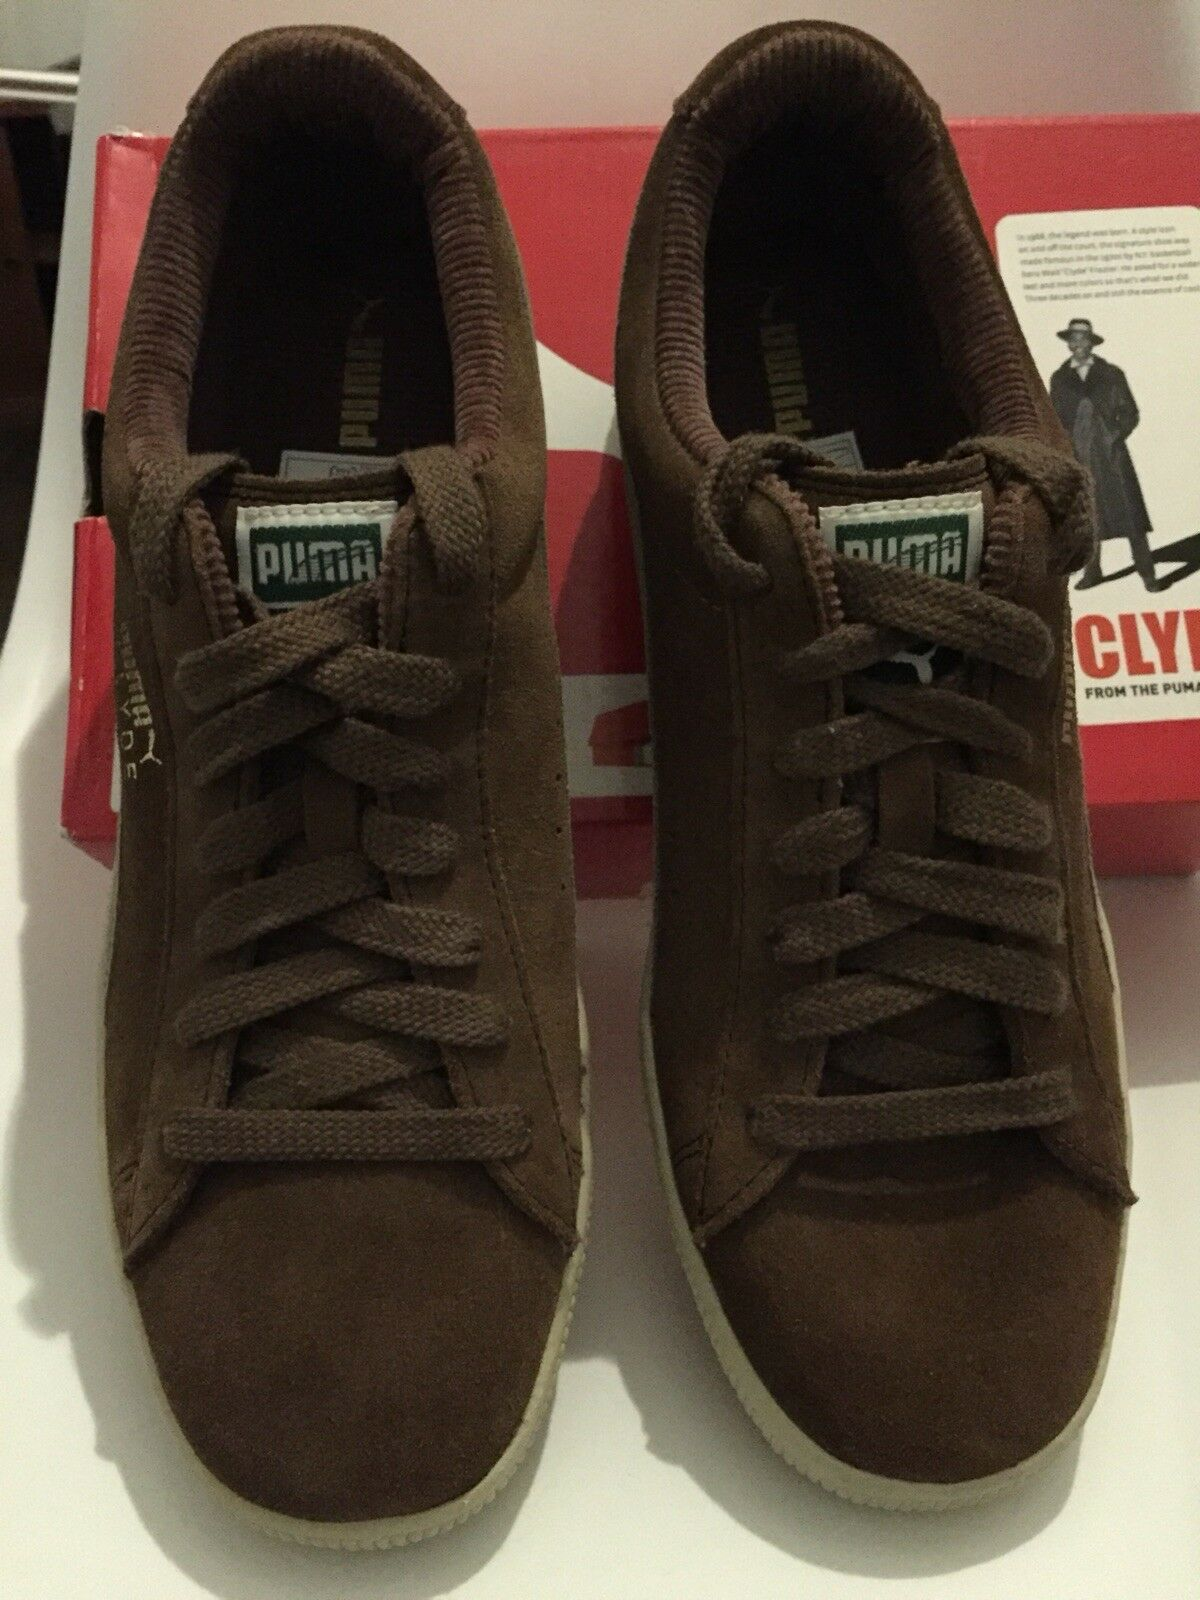 Puma Clyde 2005 Edition , brown , cord , US 9.5